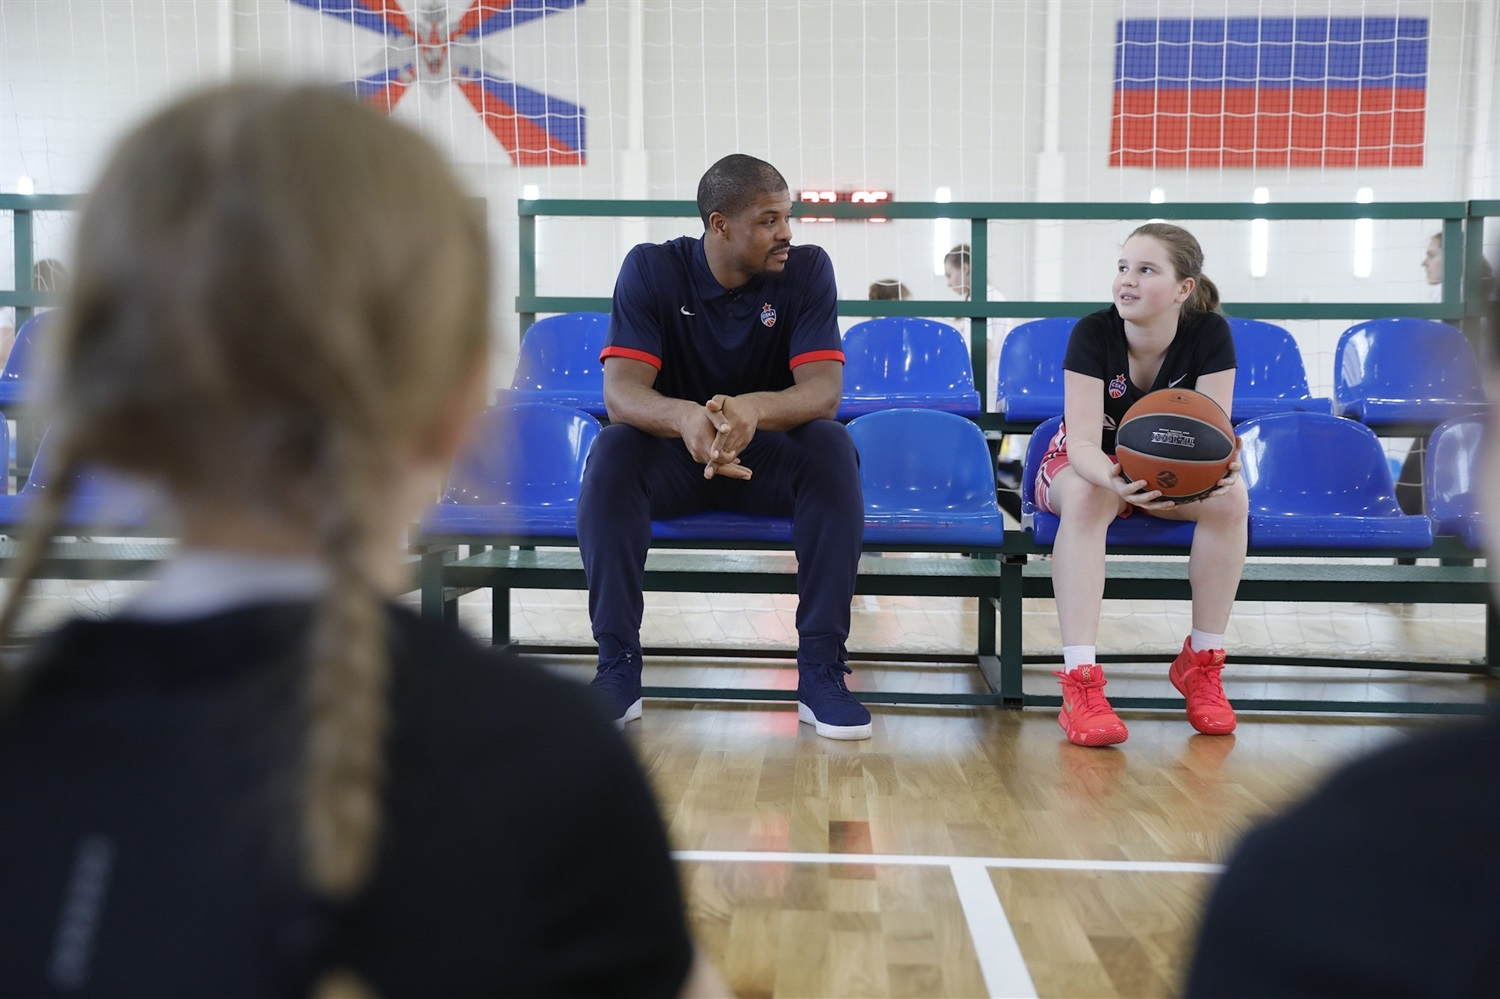 Kyle Hines - One Team session in Moscow - CSKA Moscow (photo CSKA) - EB18